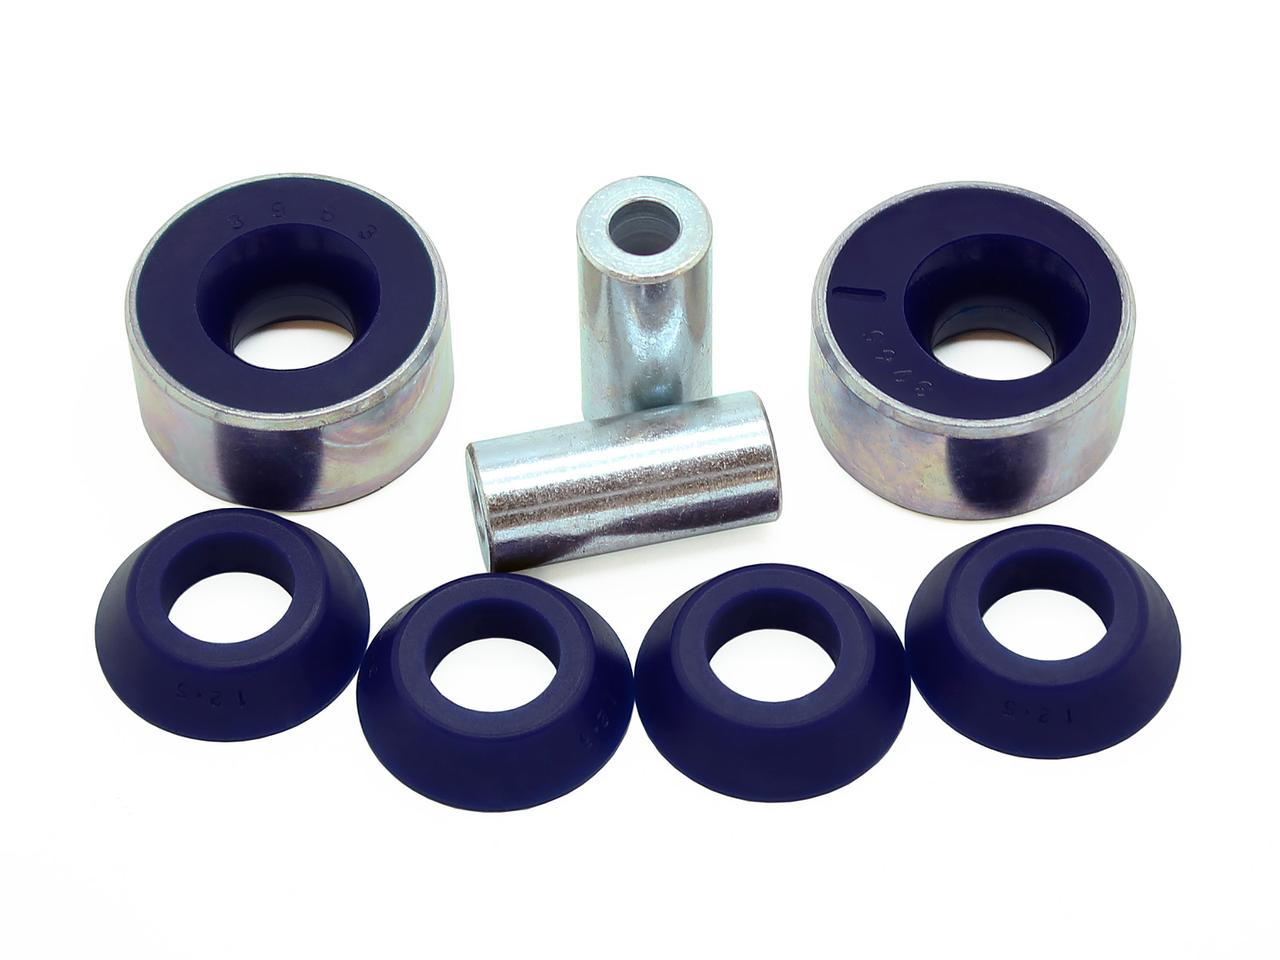 Renault Clio Mk3 SuperPro Control Arm Lower-Rear Bush Kit: Steering-Pull Correction Kit